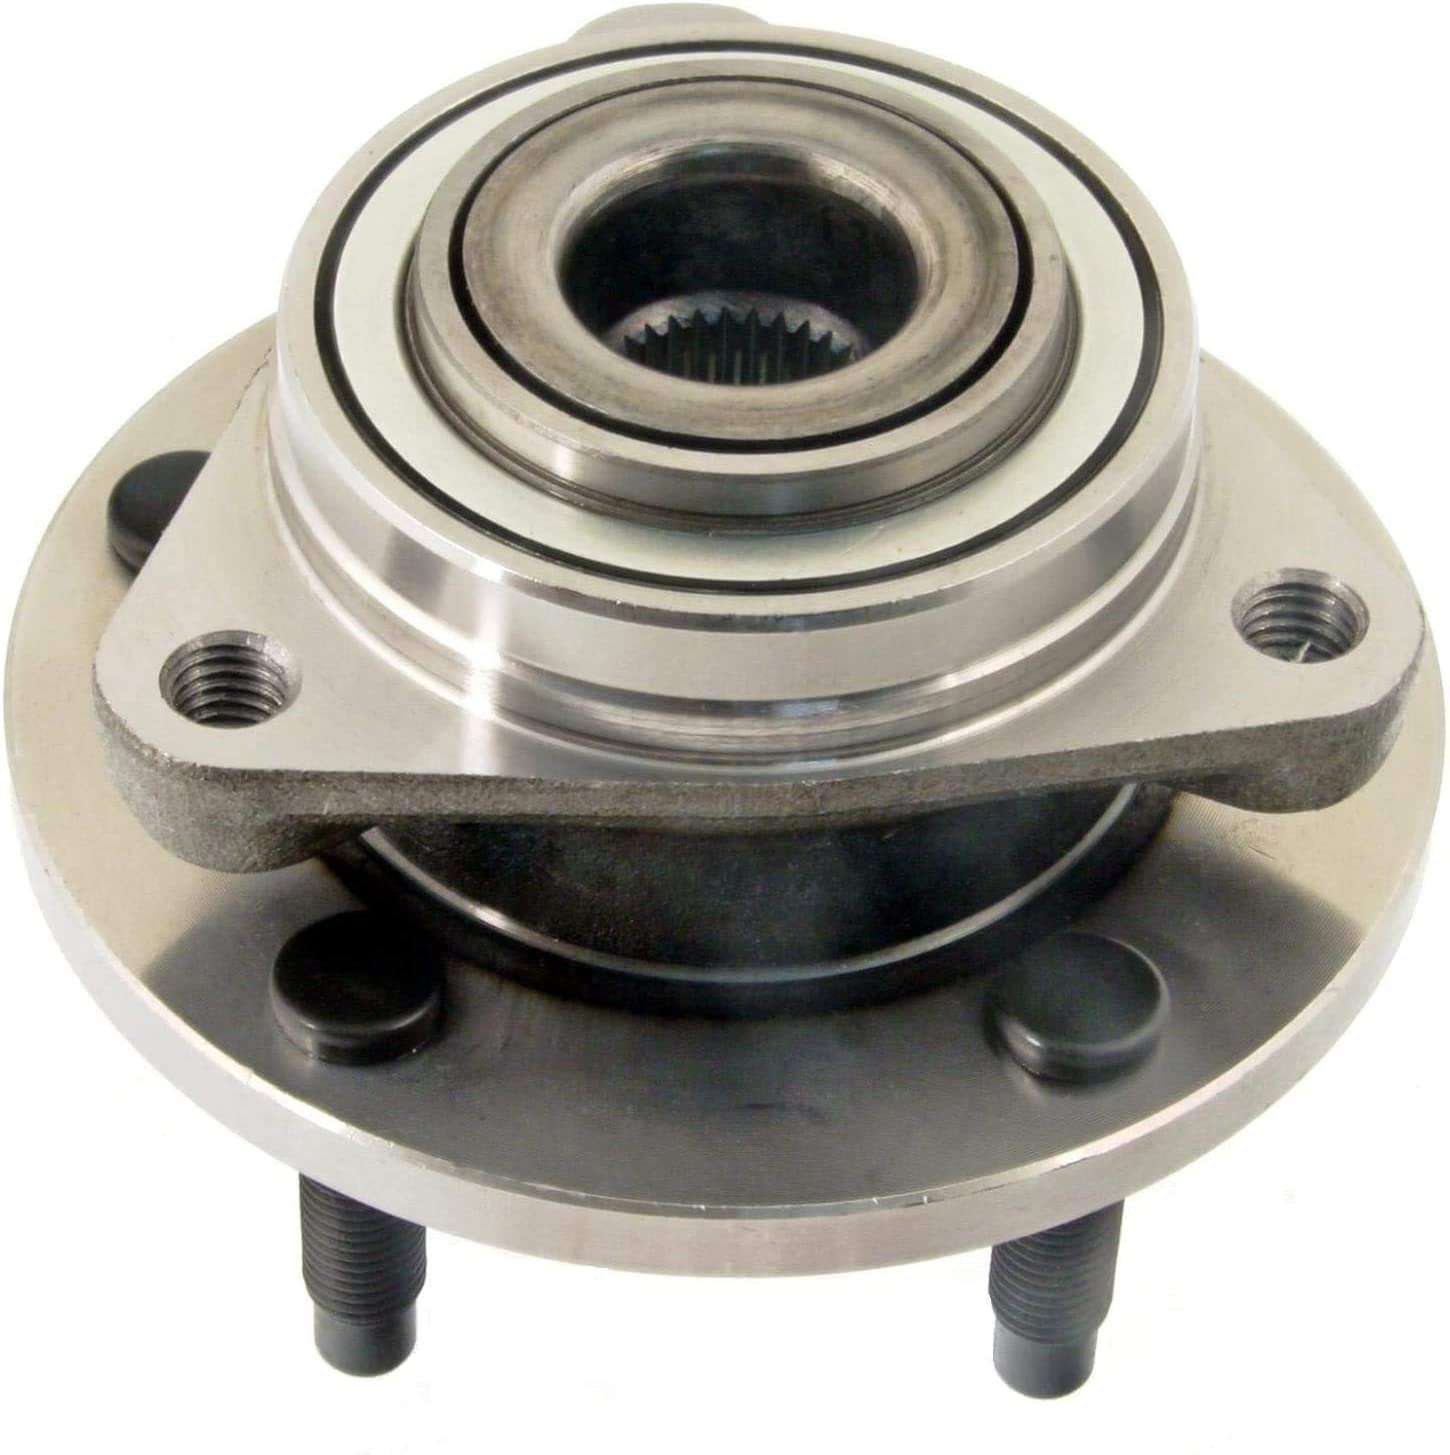 NO-ABS AdecoAutoParts/© Front Wheel bearing Hub Assembly for Chevrolet HHR 2006 2007 2008